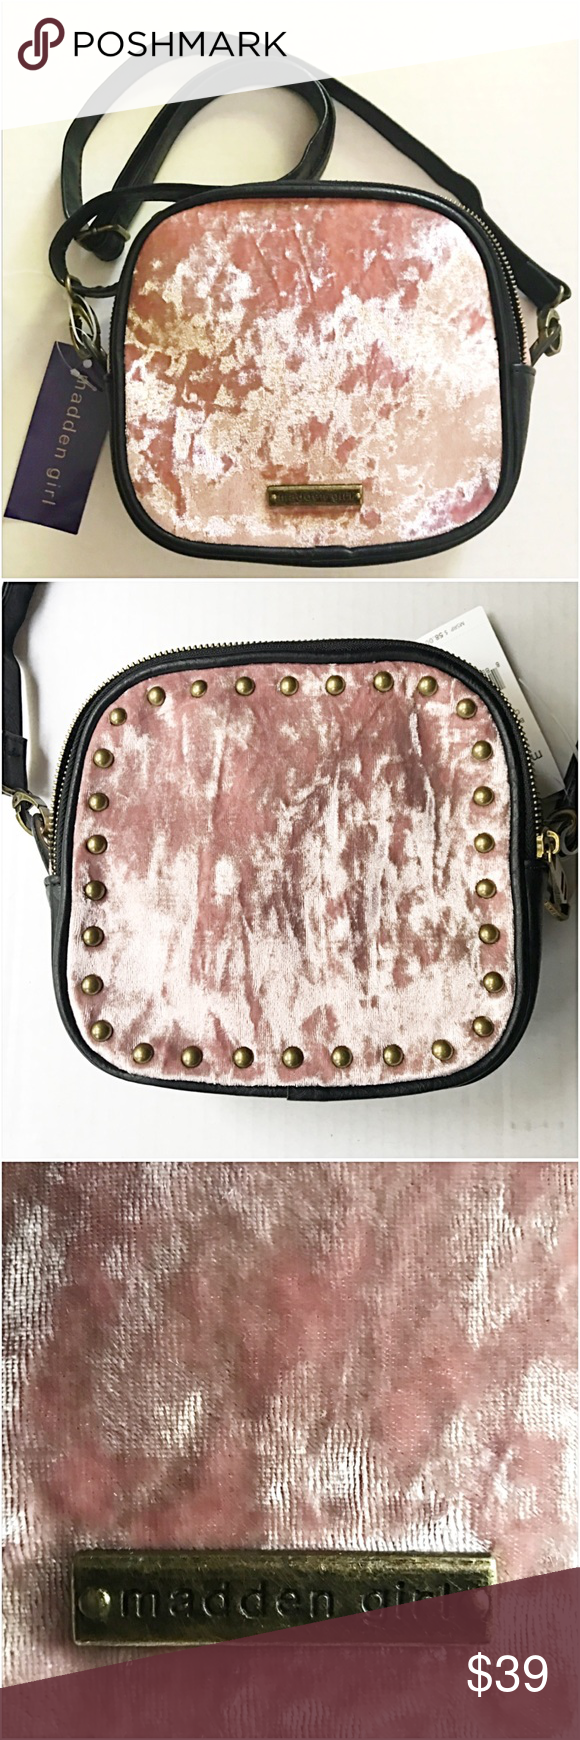 """Luscious Blush Crushed Velvet Cross Body Bag Luscious blush crushed velvet crossbody bag by Madden Girl. Measures approximately 8 x 8 x 3.5"""" Adjustable strap drop approximately 24.5"""". Double zipper two sided with one slip pocket & one zip pocket. Black faux leather trim & antique bronze studs & hardware. NWT mini medium Madden Girl Bags Crossbody Bags"""